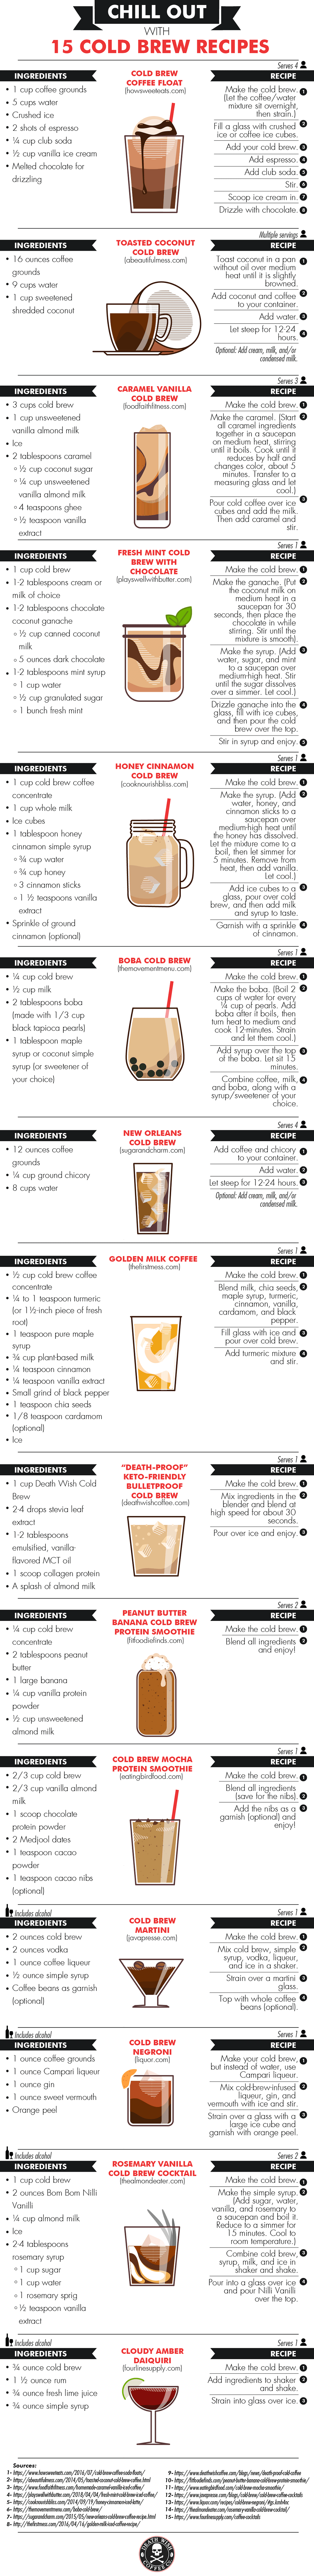 Chill Out With 15 Cold Brew Recipes - DeathWishCoffee.com - Infographic